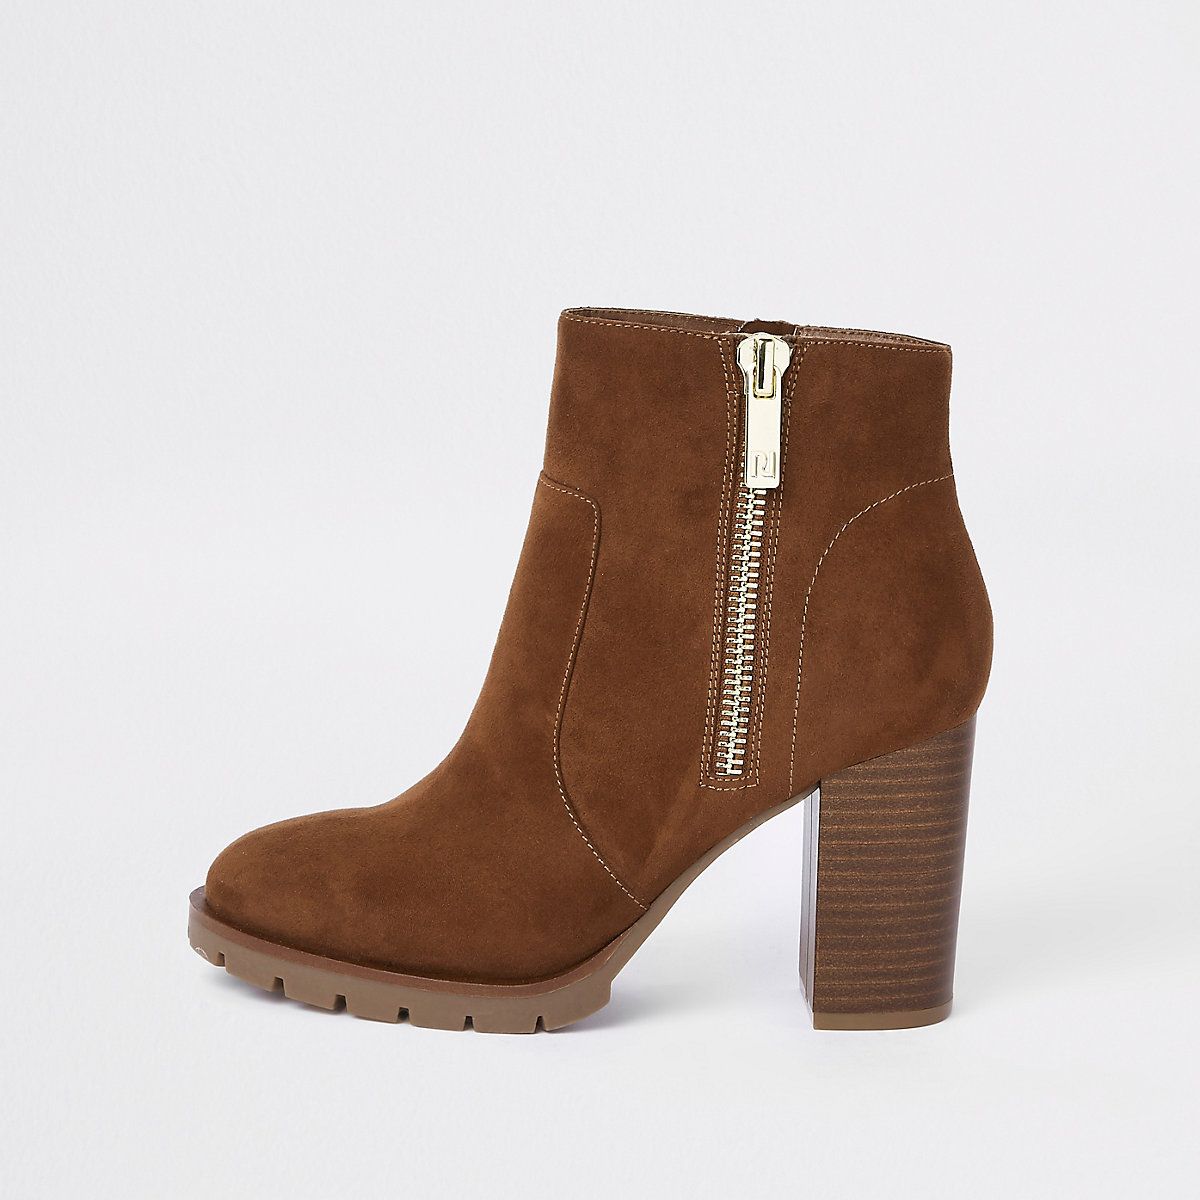 Brown suede side zip block heel ankle boots